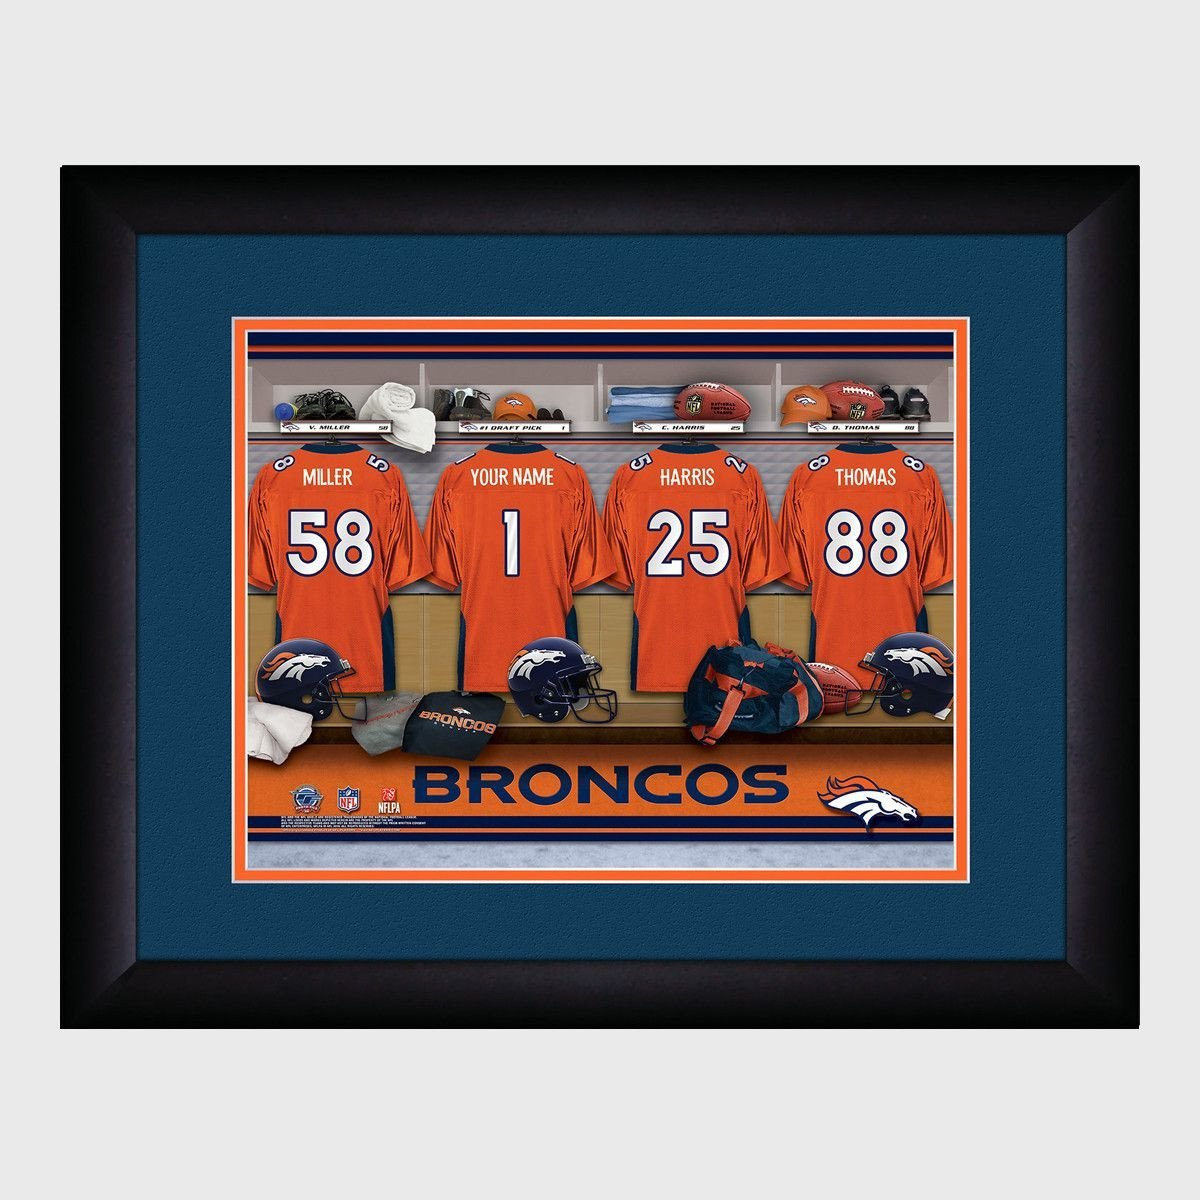 Personalized NFL Locker Room Print - Denver Broncos